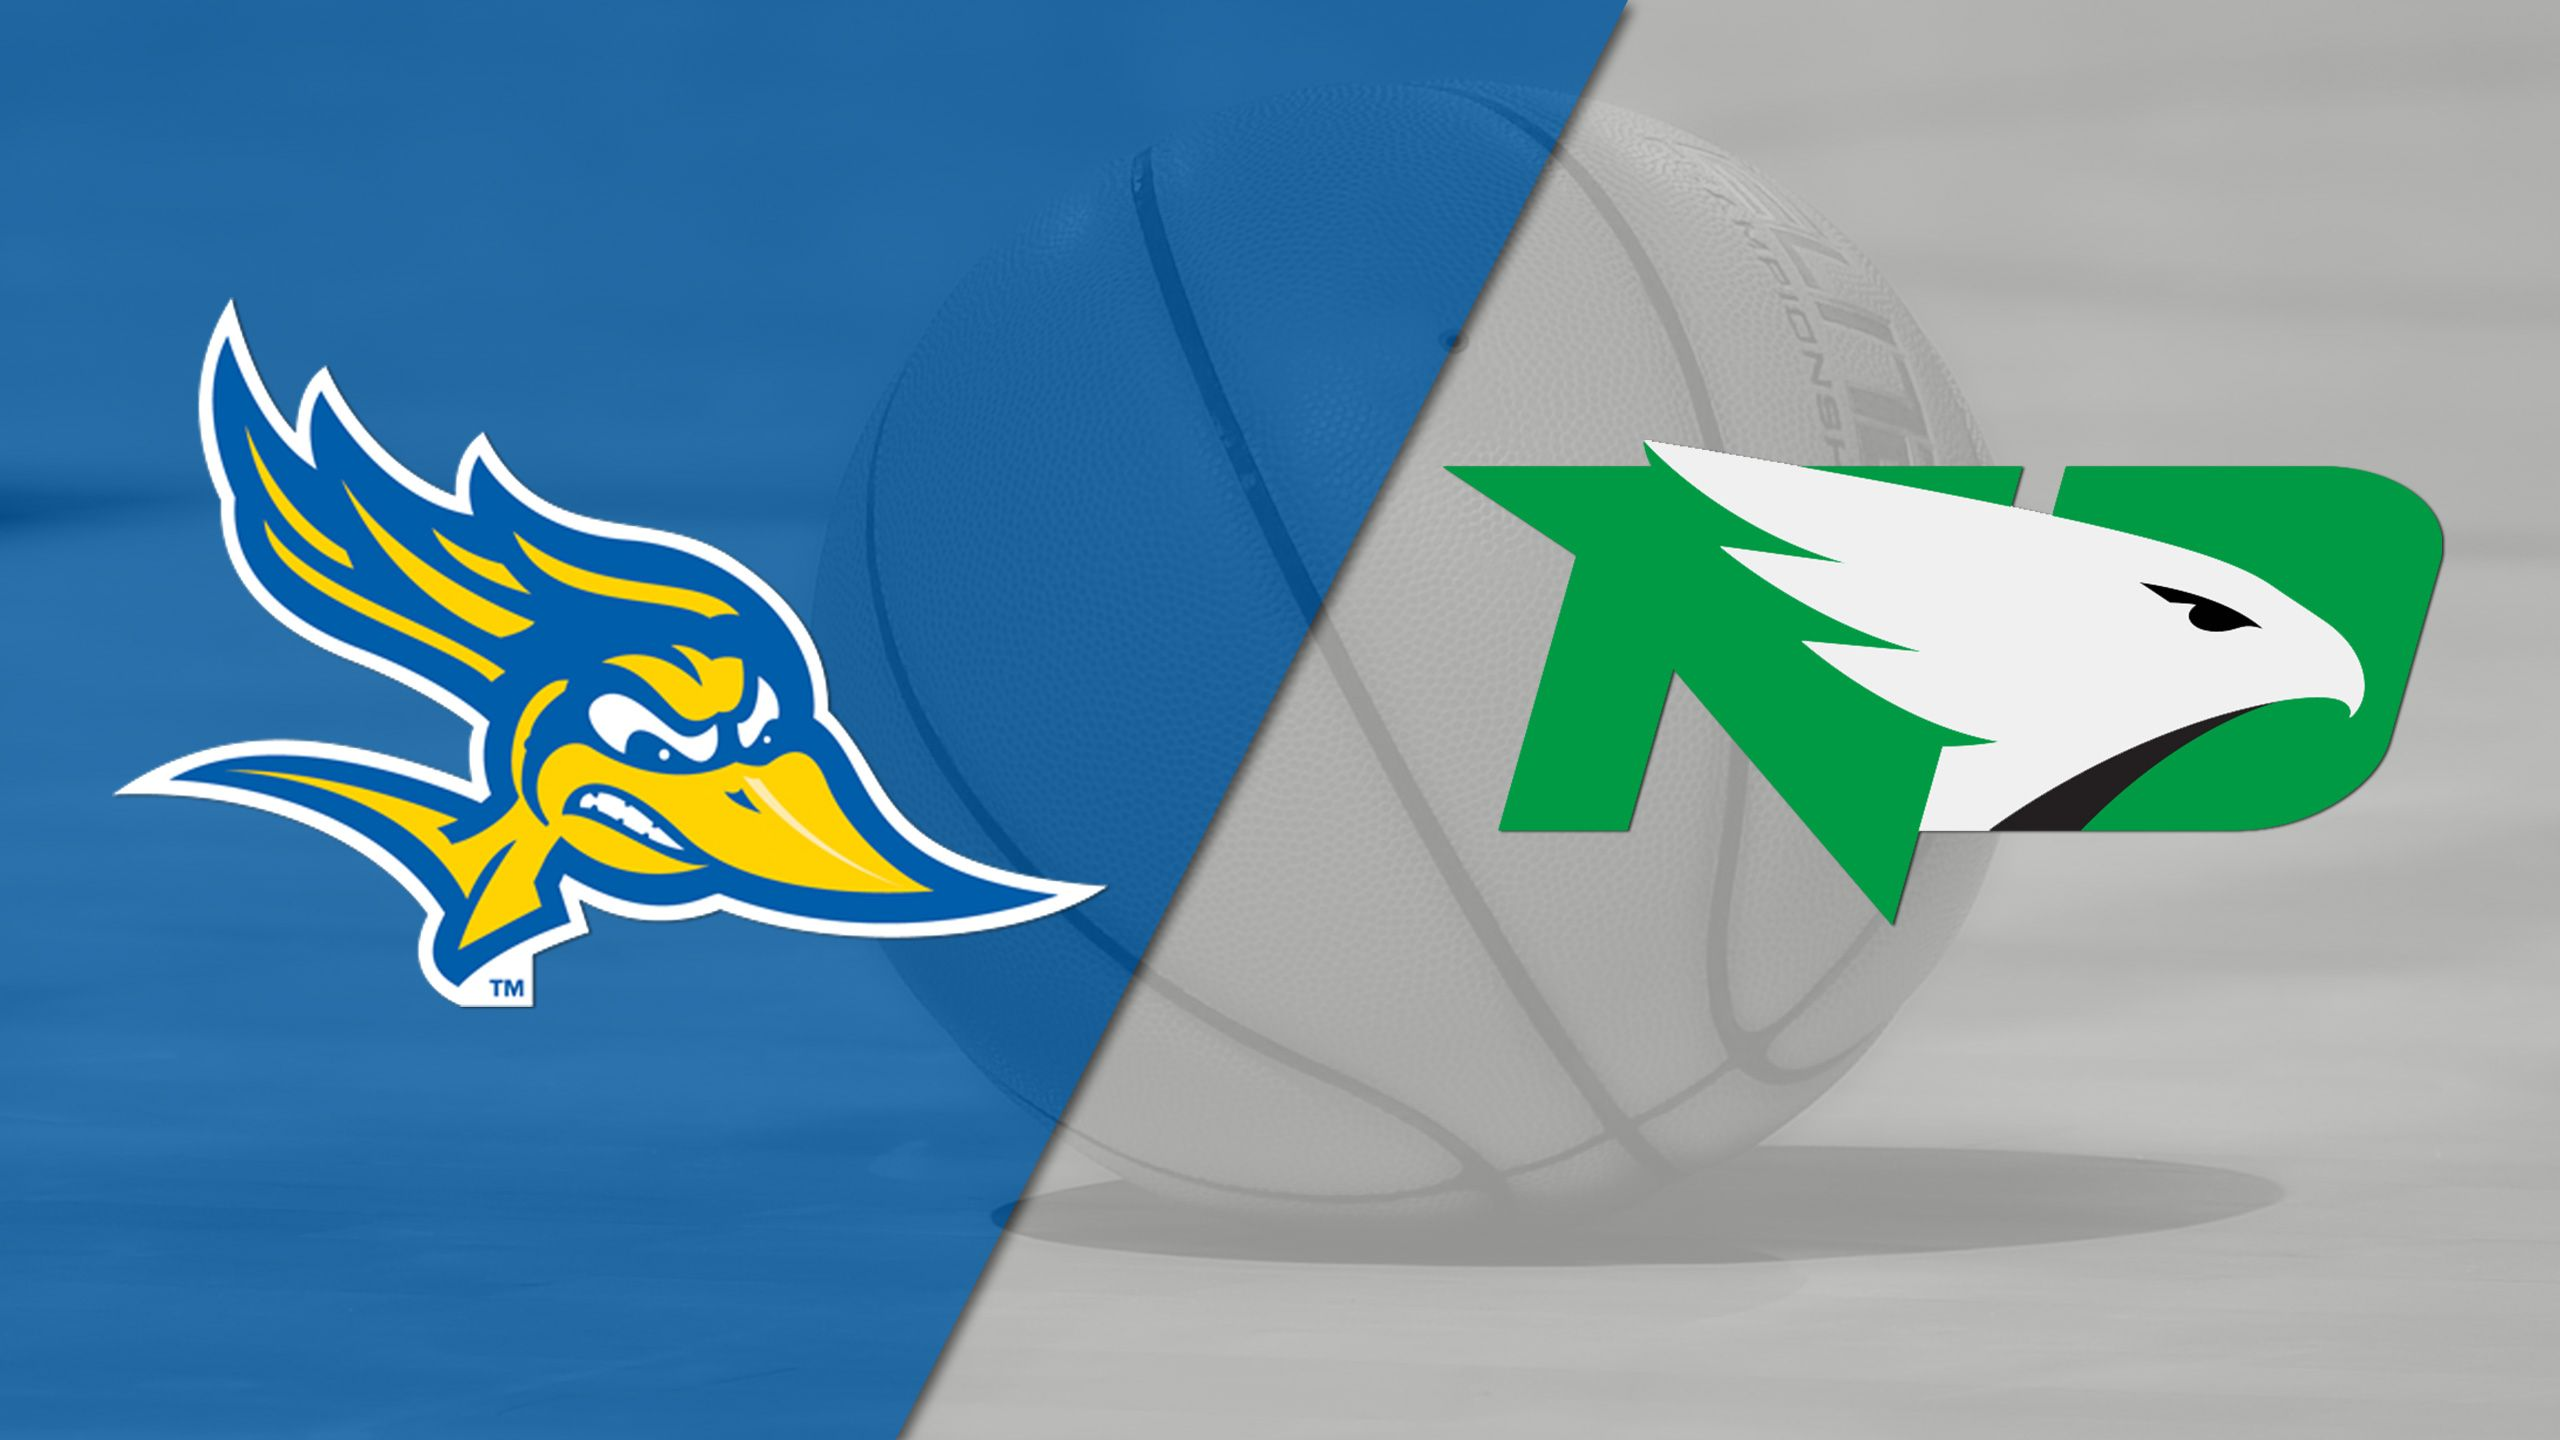 CSU Bakersfield vs. North Dakota (M Basketball)